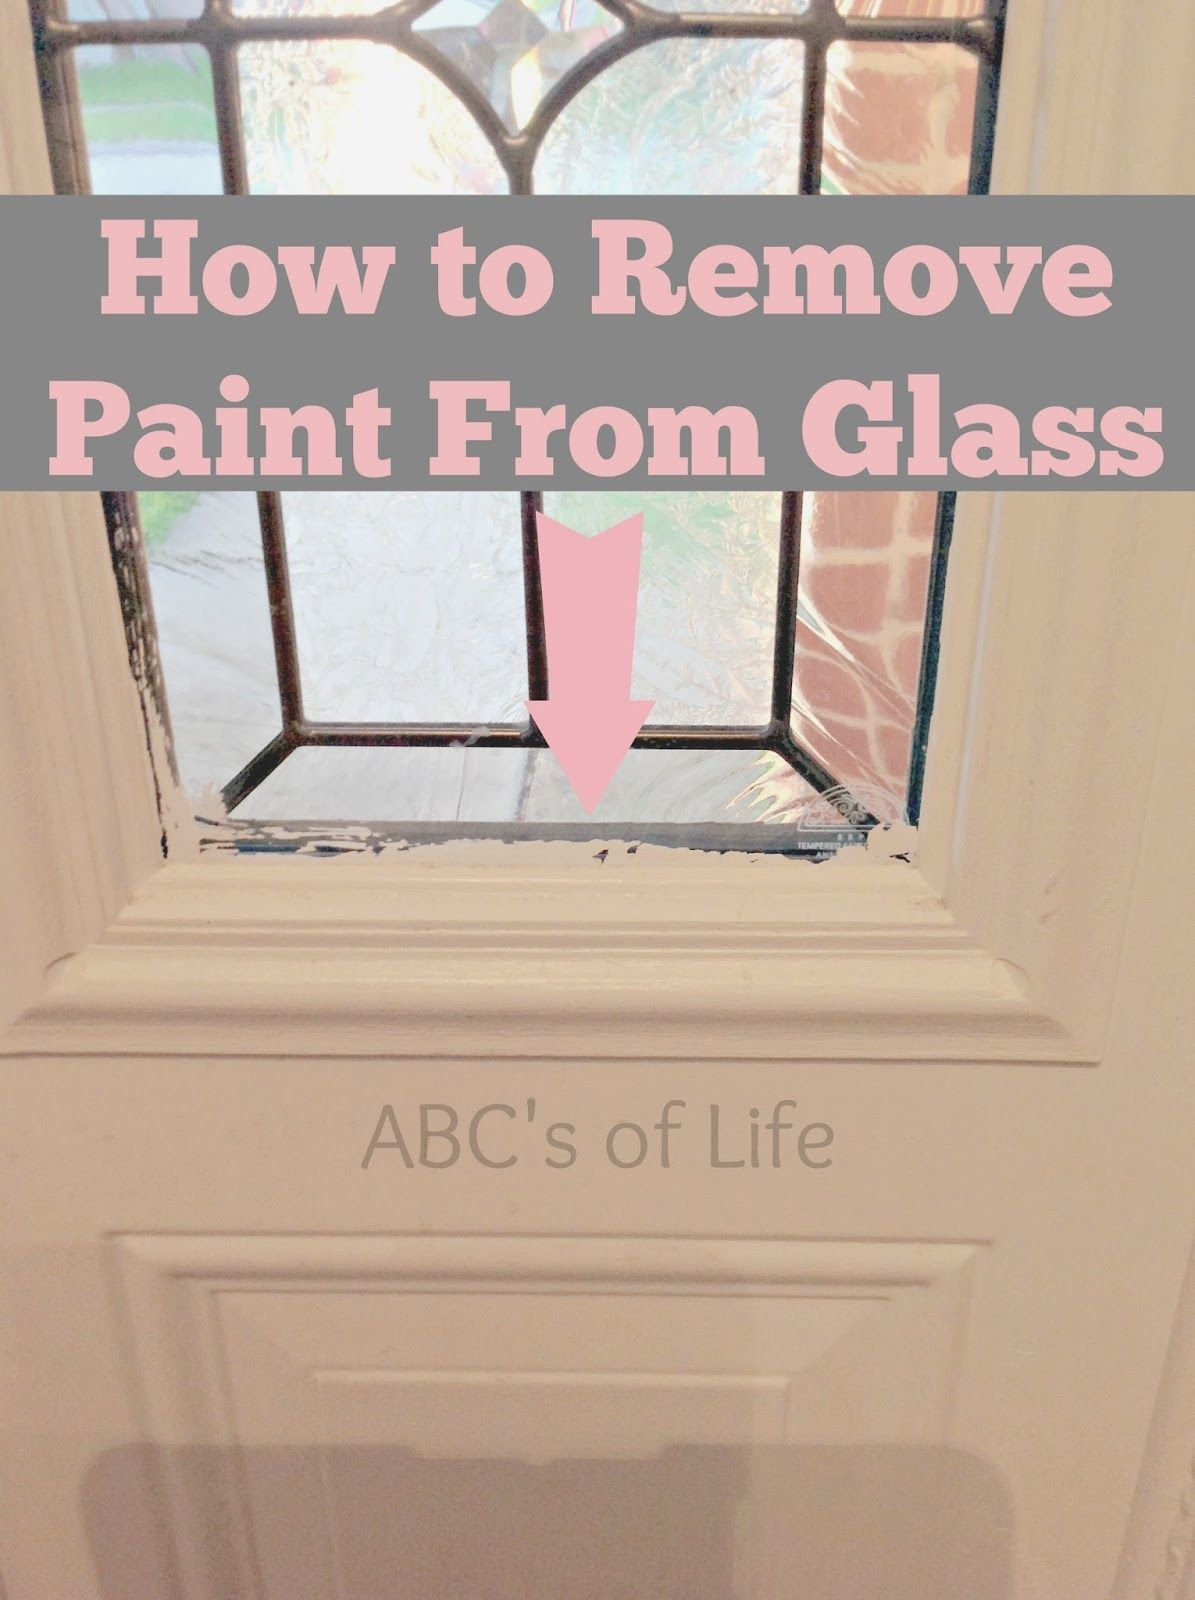 How To Remove Paint From Glass Ashley Nicole Designs Remove Paint From Glass Paint Remover Glass